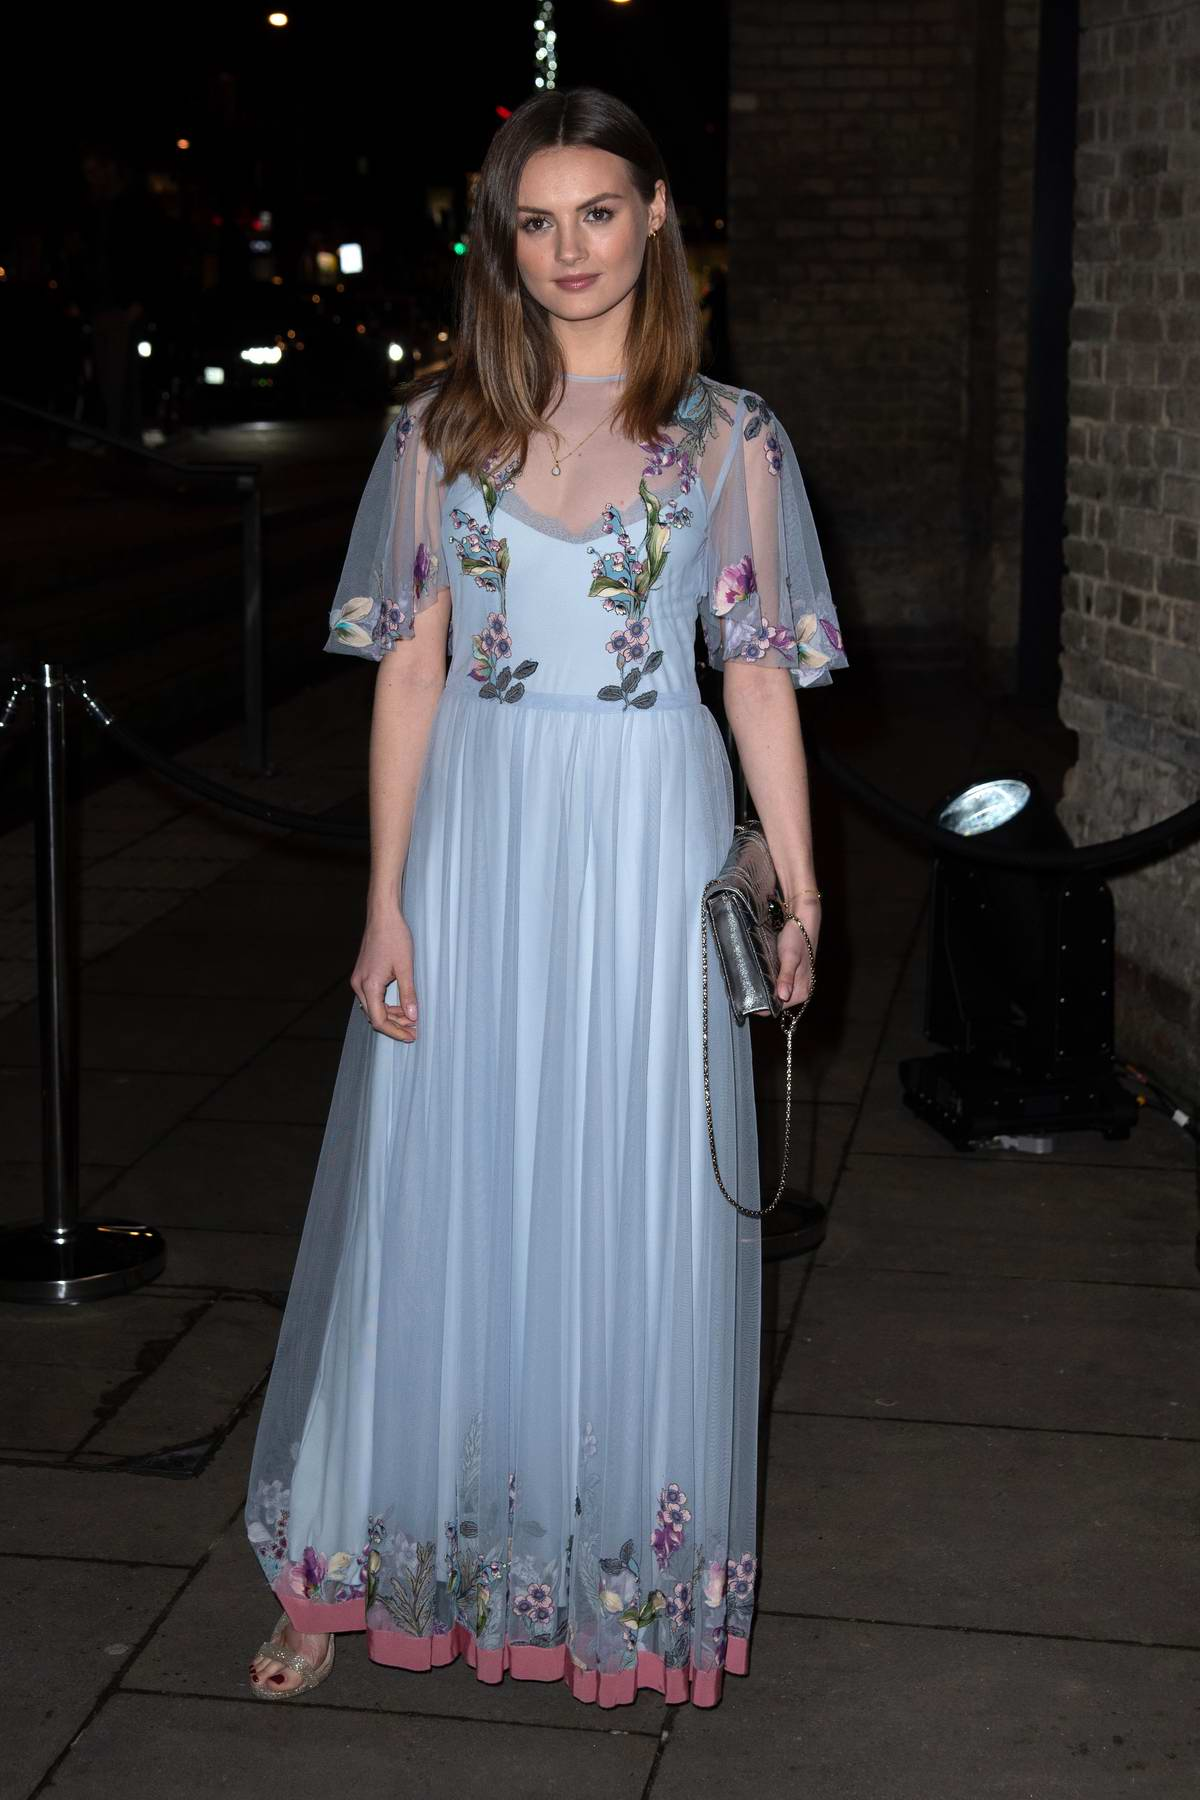 Niomi Smart attends the Fabulous Fund Fair during London Fashion Week at The Roundhouse in London, UK